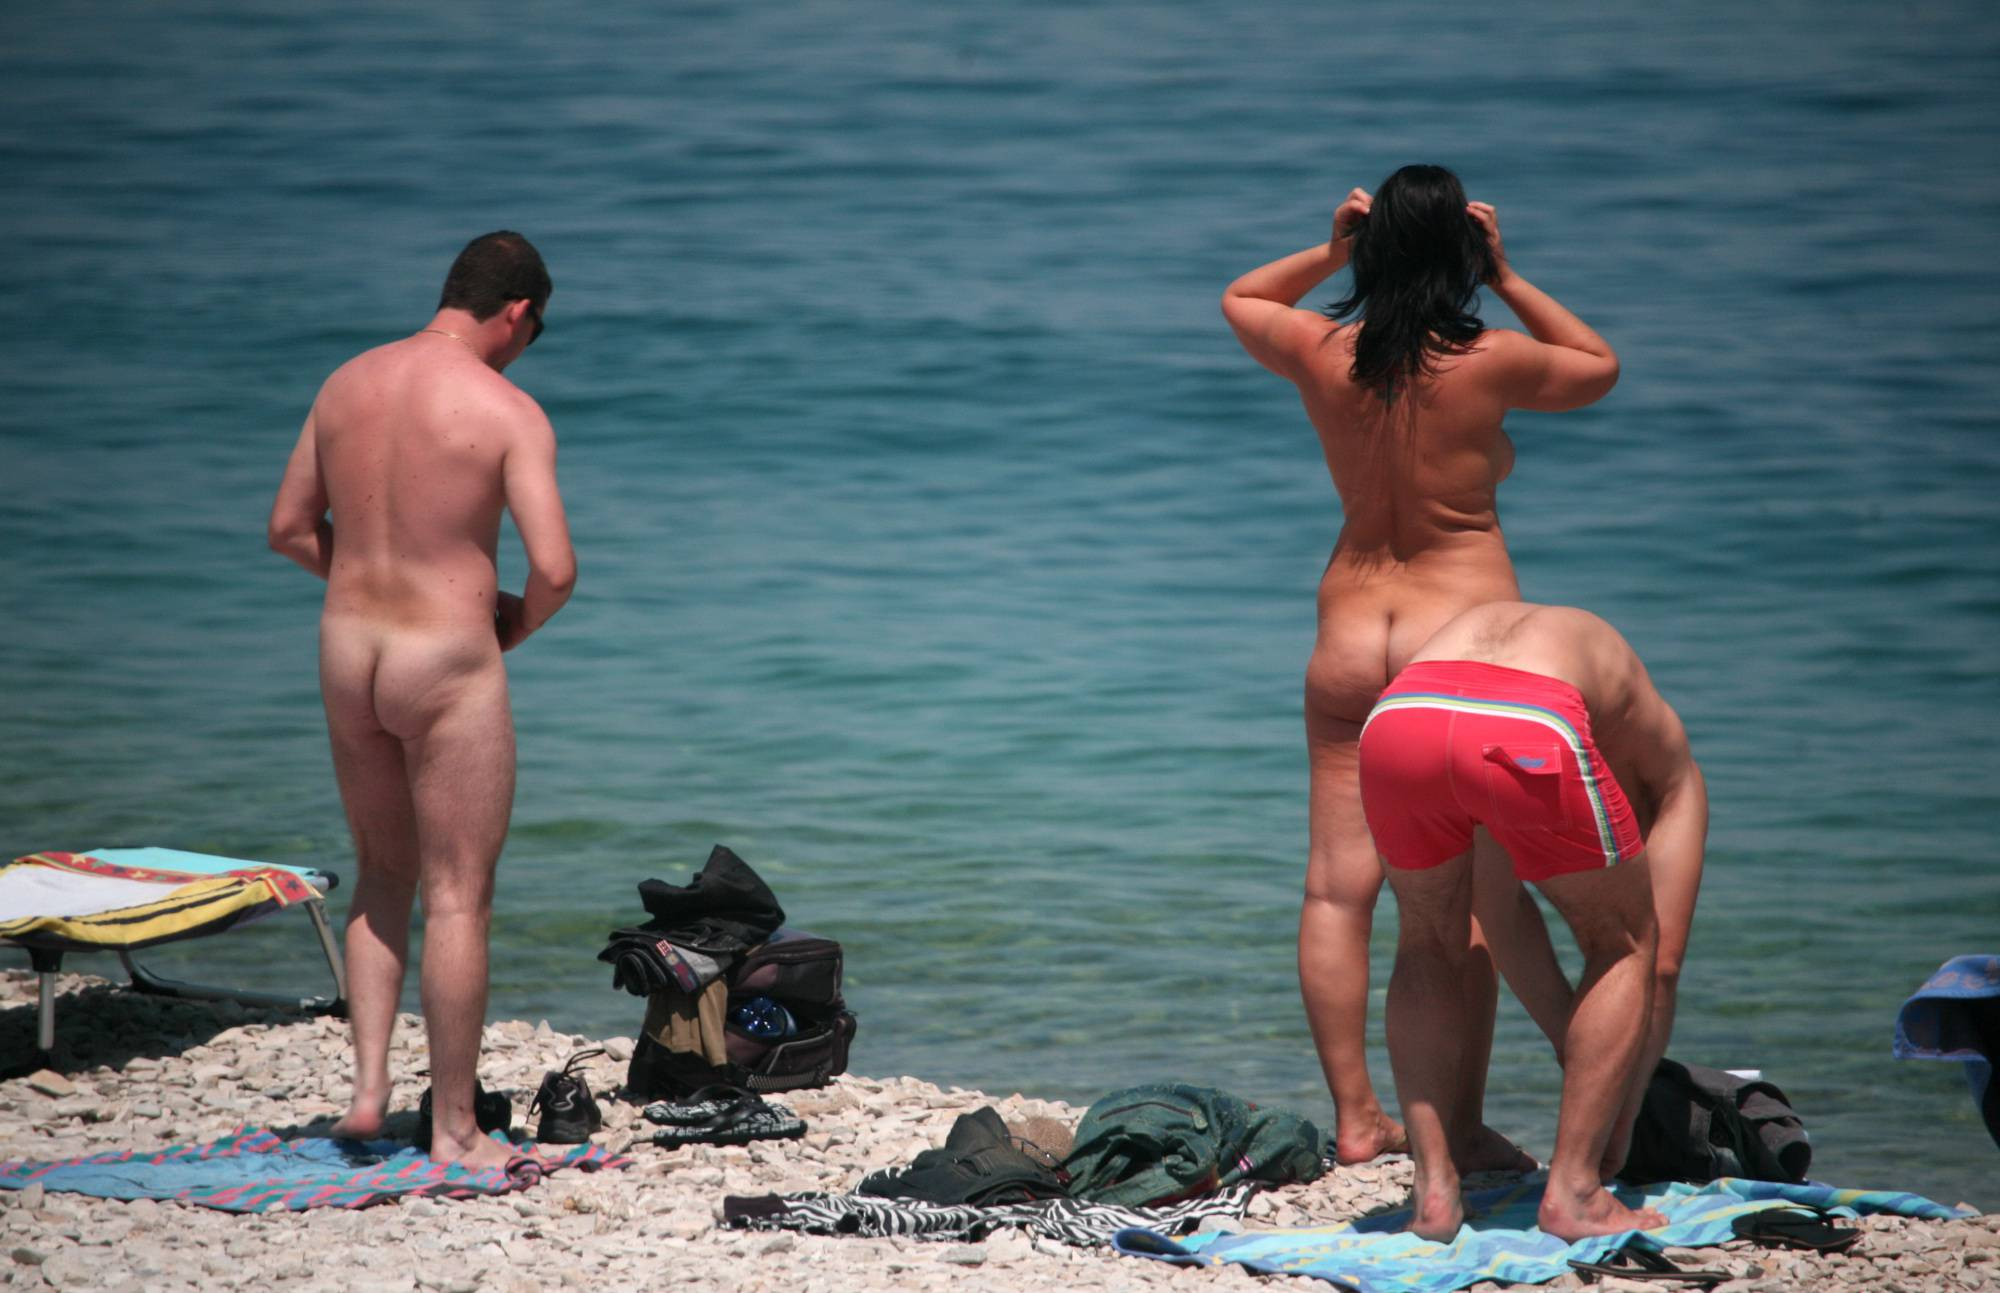 Nudist Gallery Friends Came on a Beach - 2